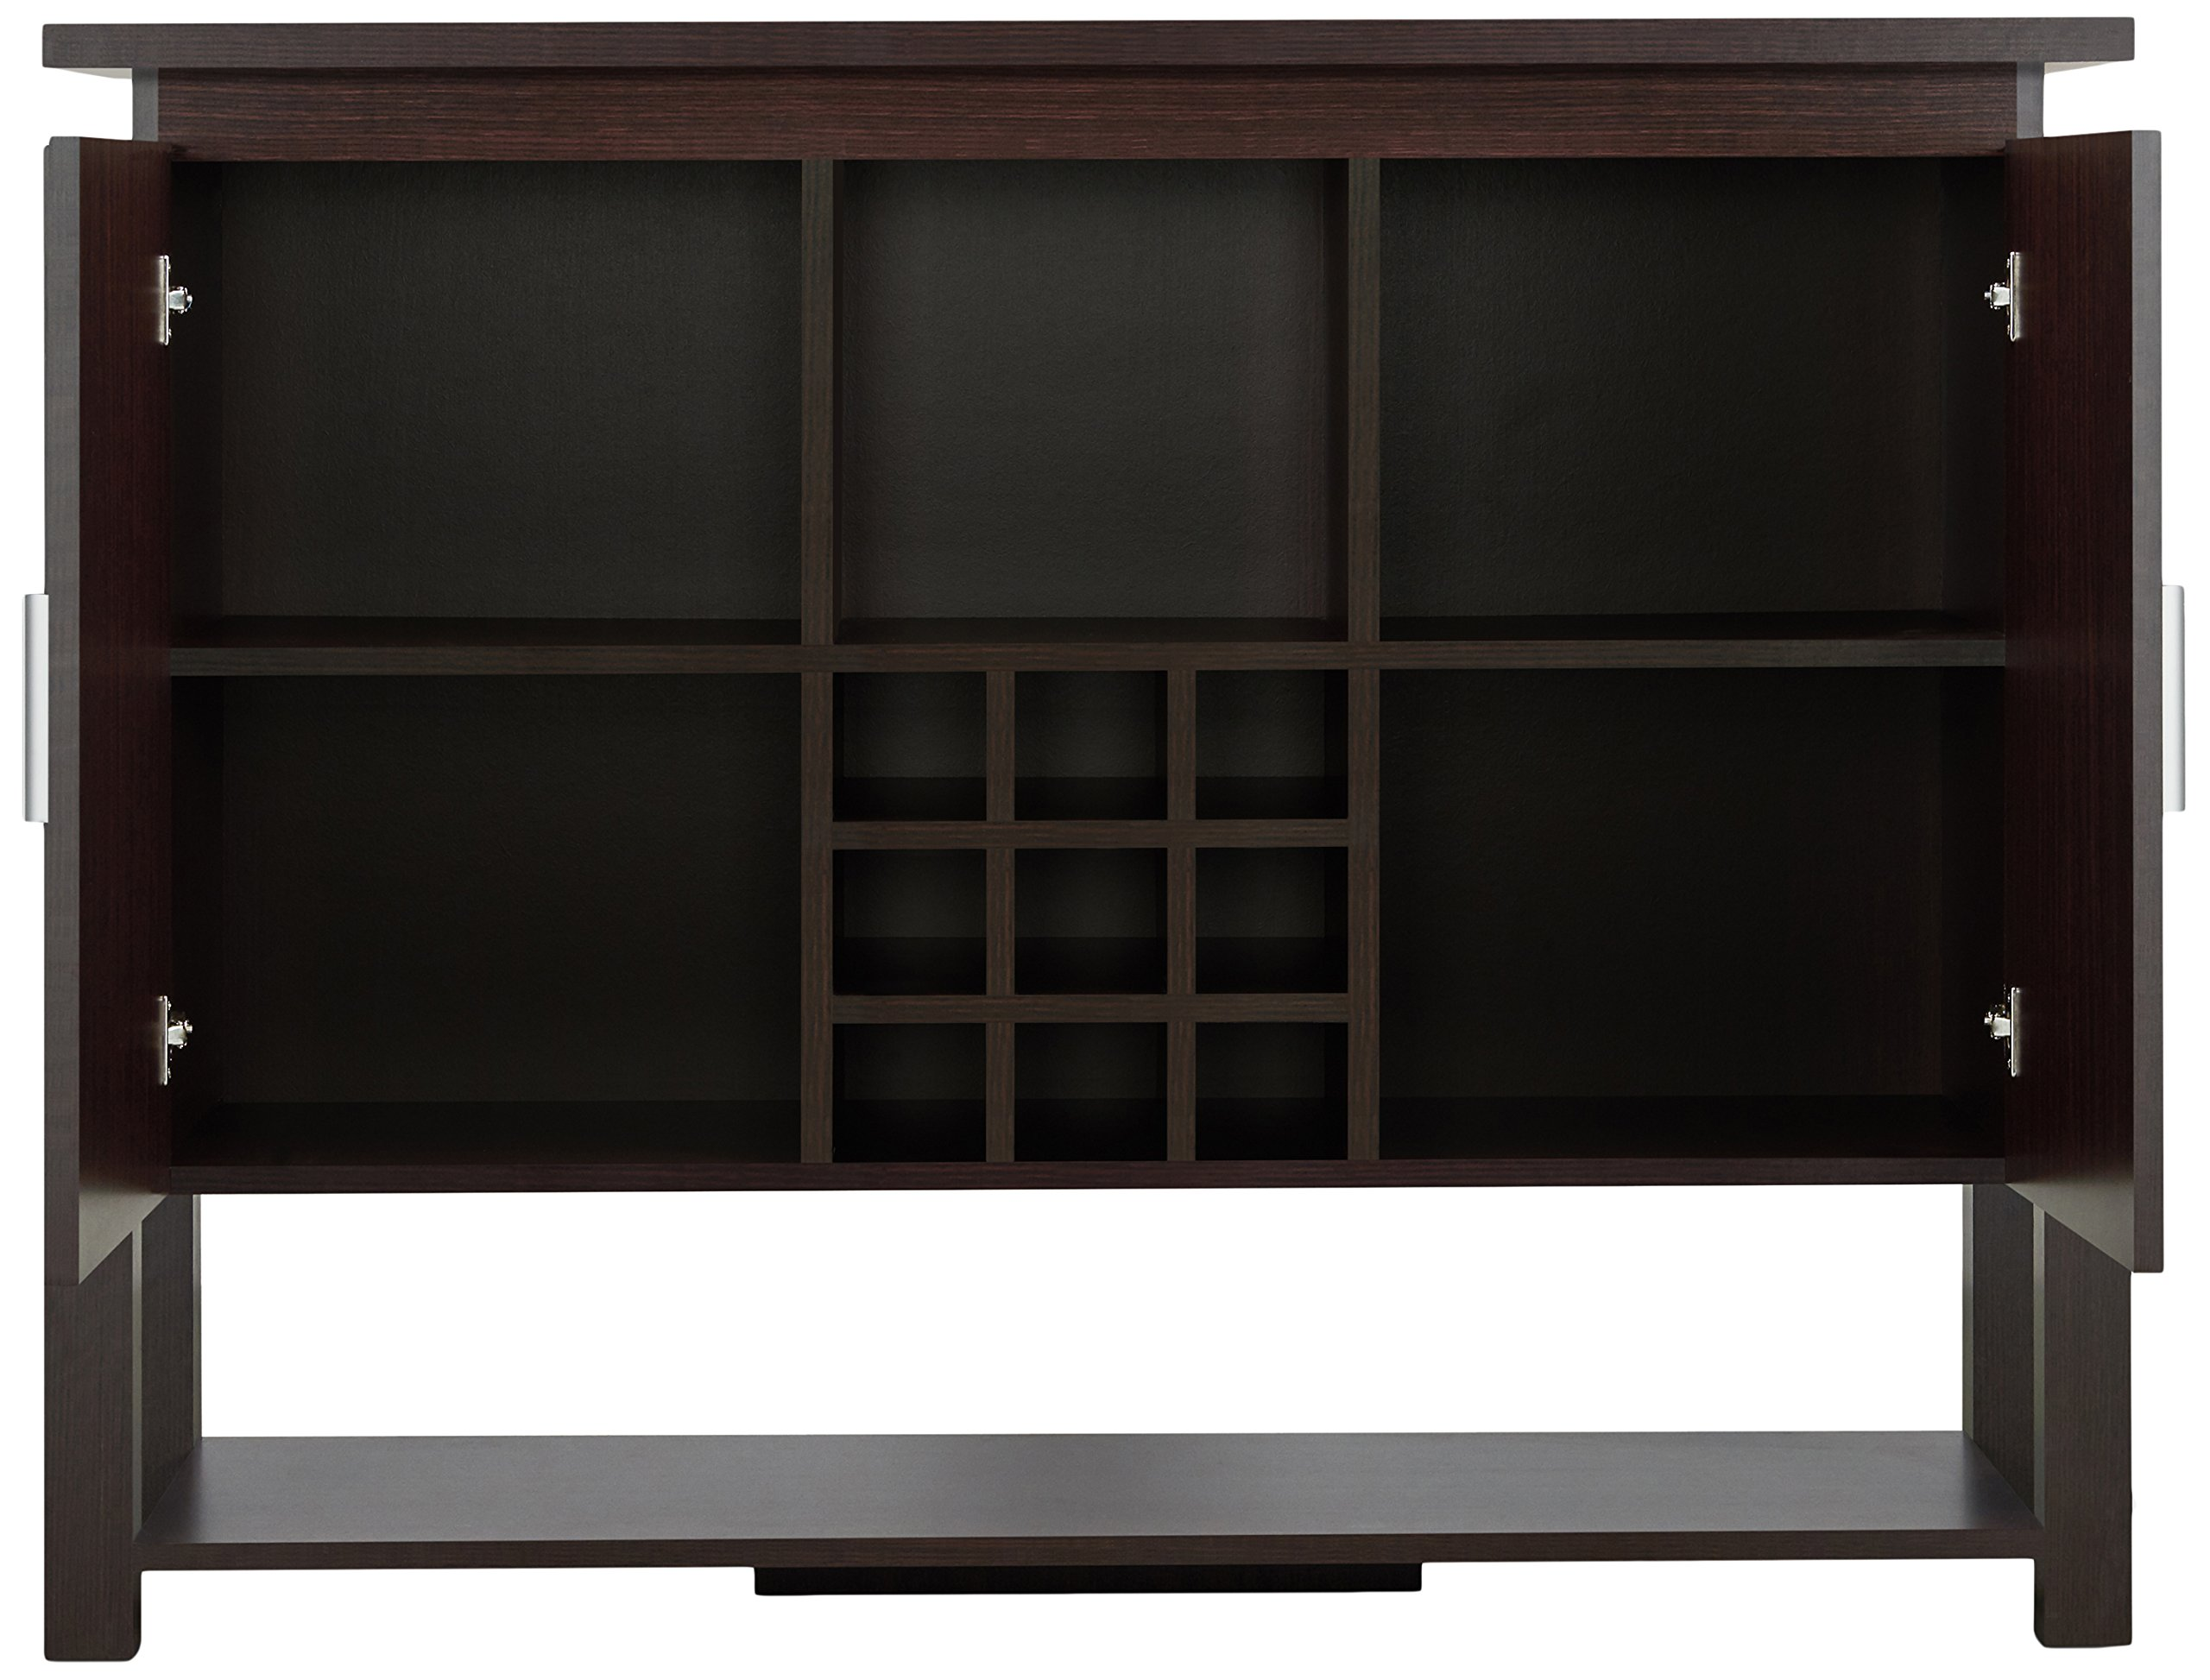 HOMES: Inside + Out HFW-1770C4 Toff Buffet Table Walnut Modern